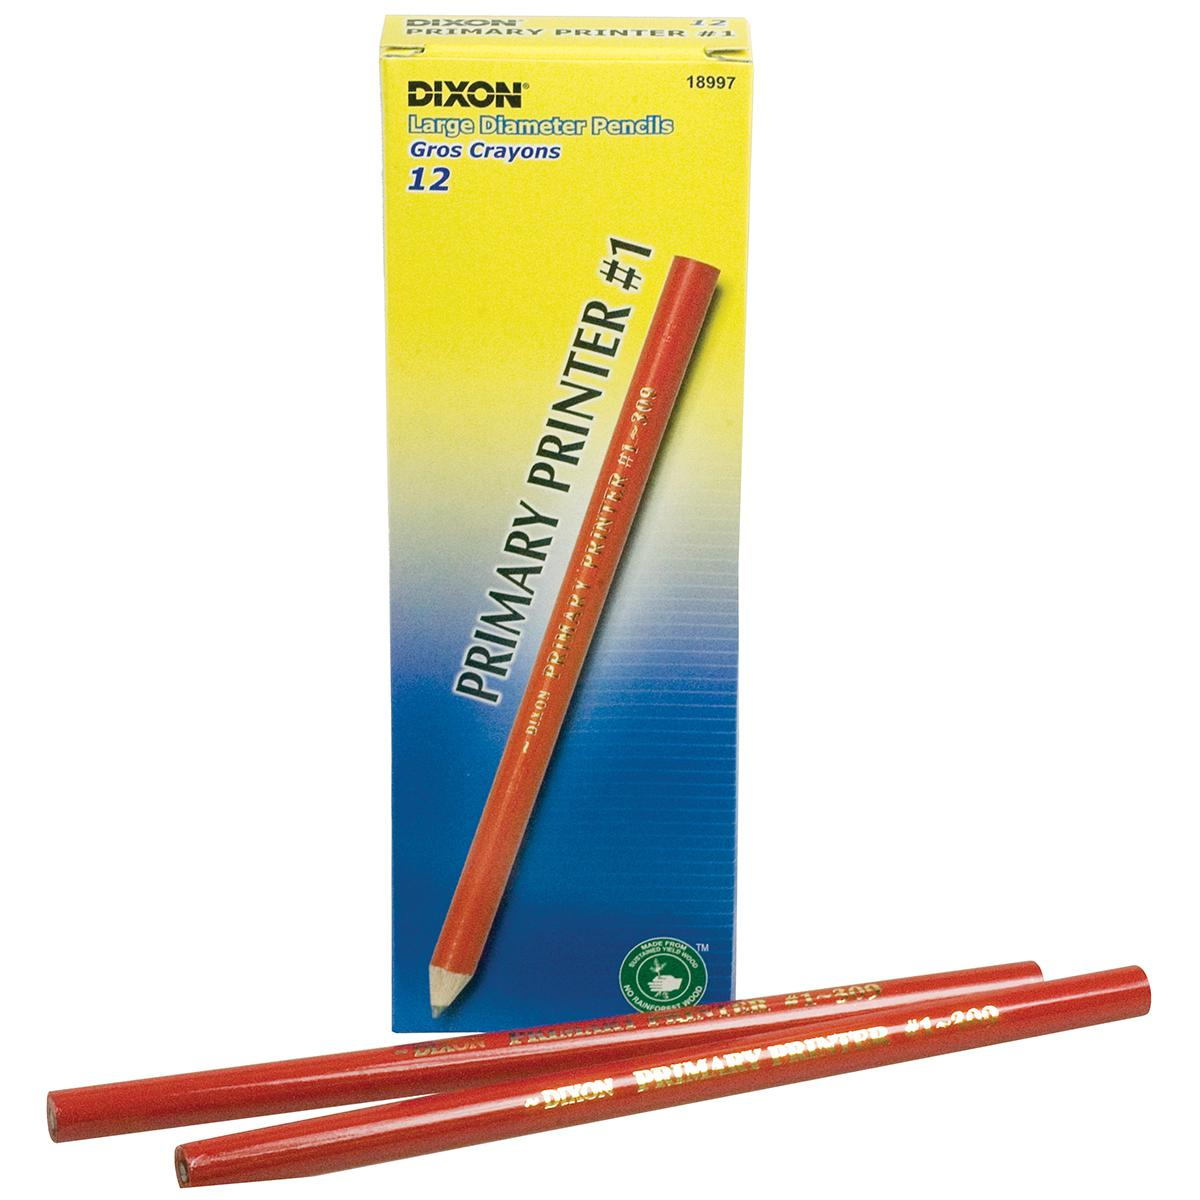 Primary Printer #1 Pencils